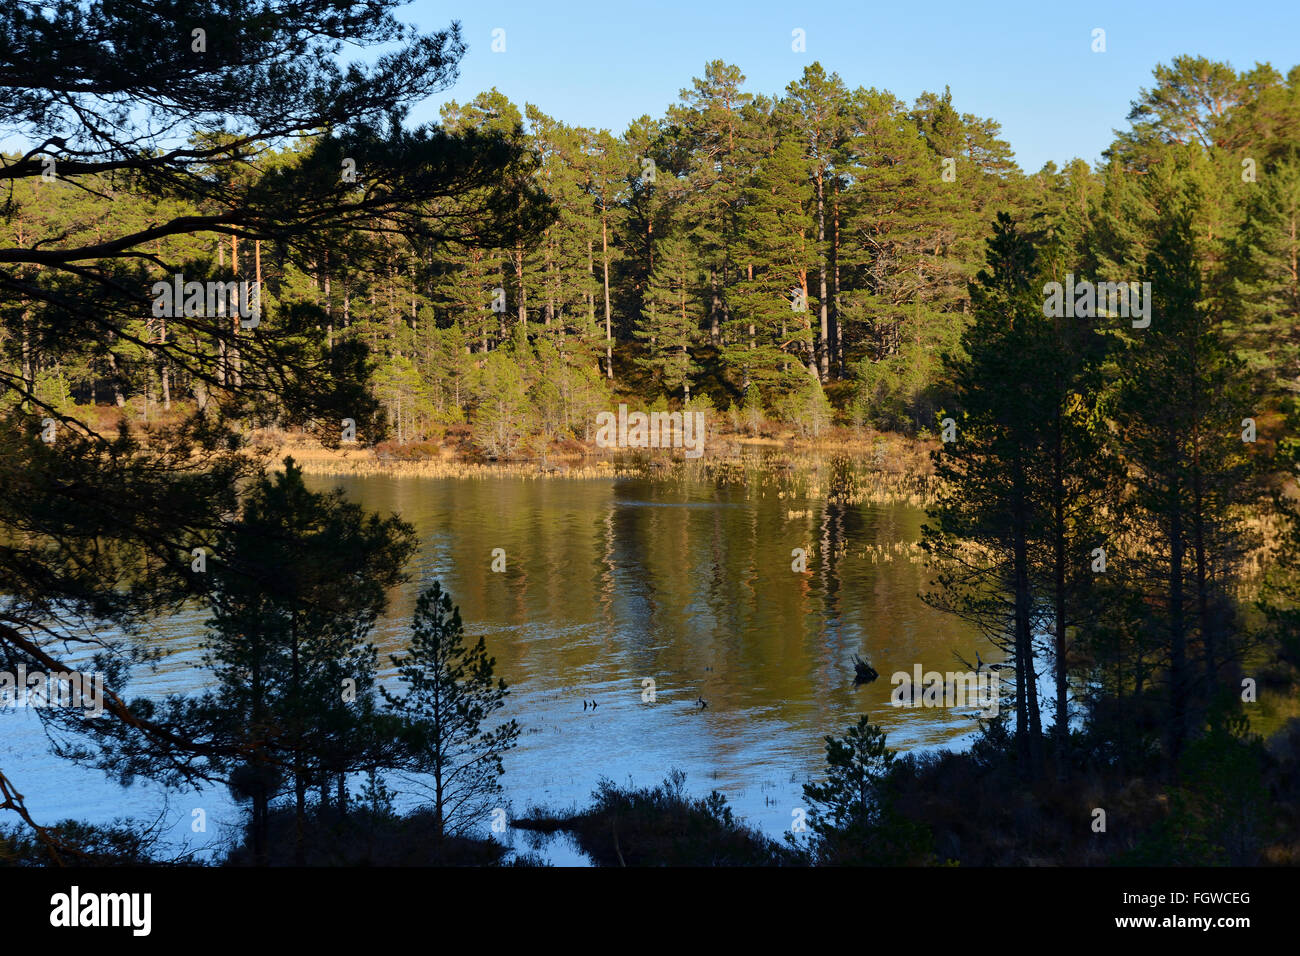 Scots pine forest on banks of Loch an Eilein, Rothiemurchus Estate, Scottish Highlands, UK - Stock Image